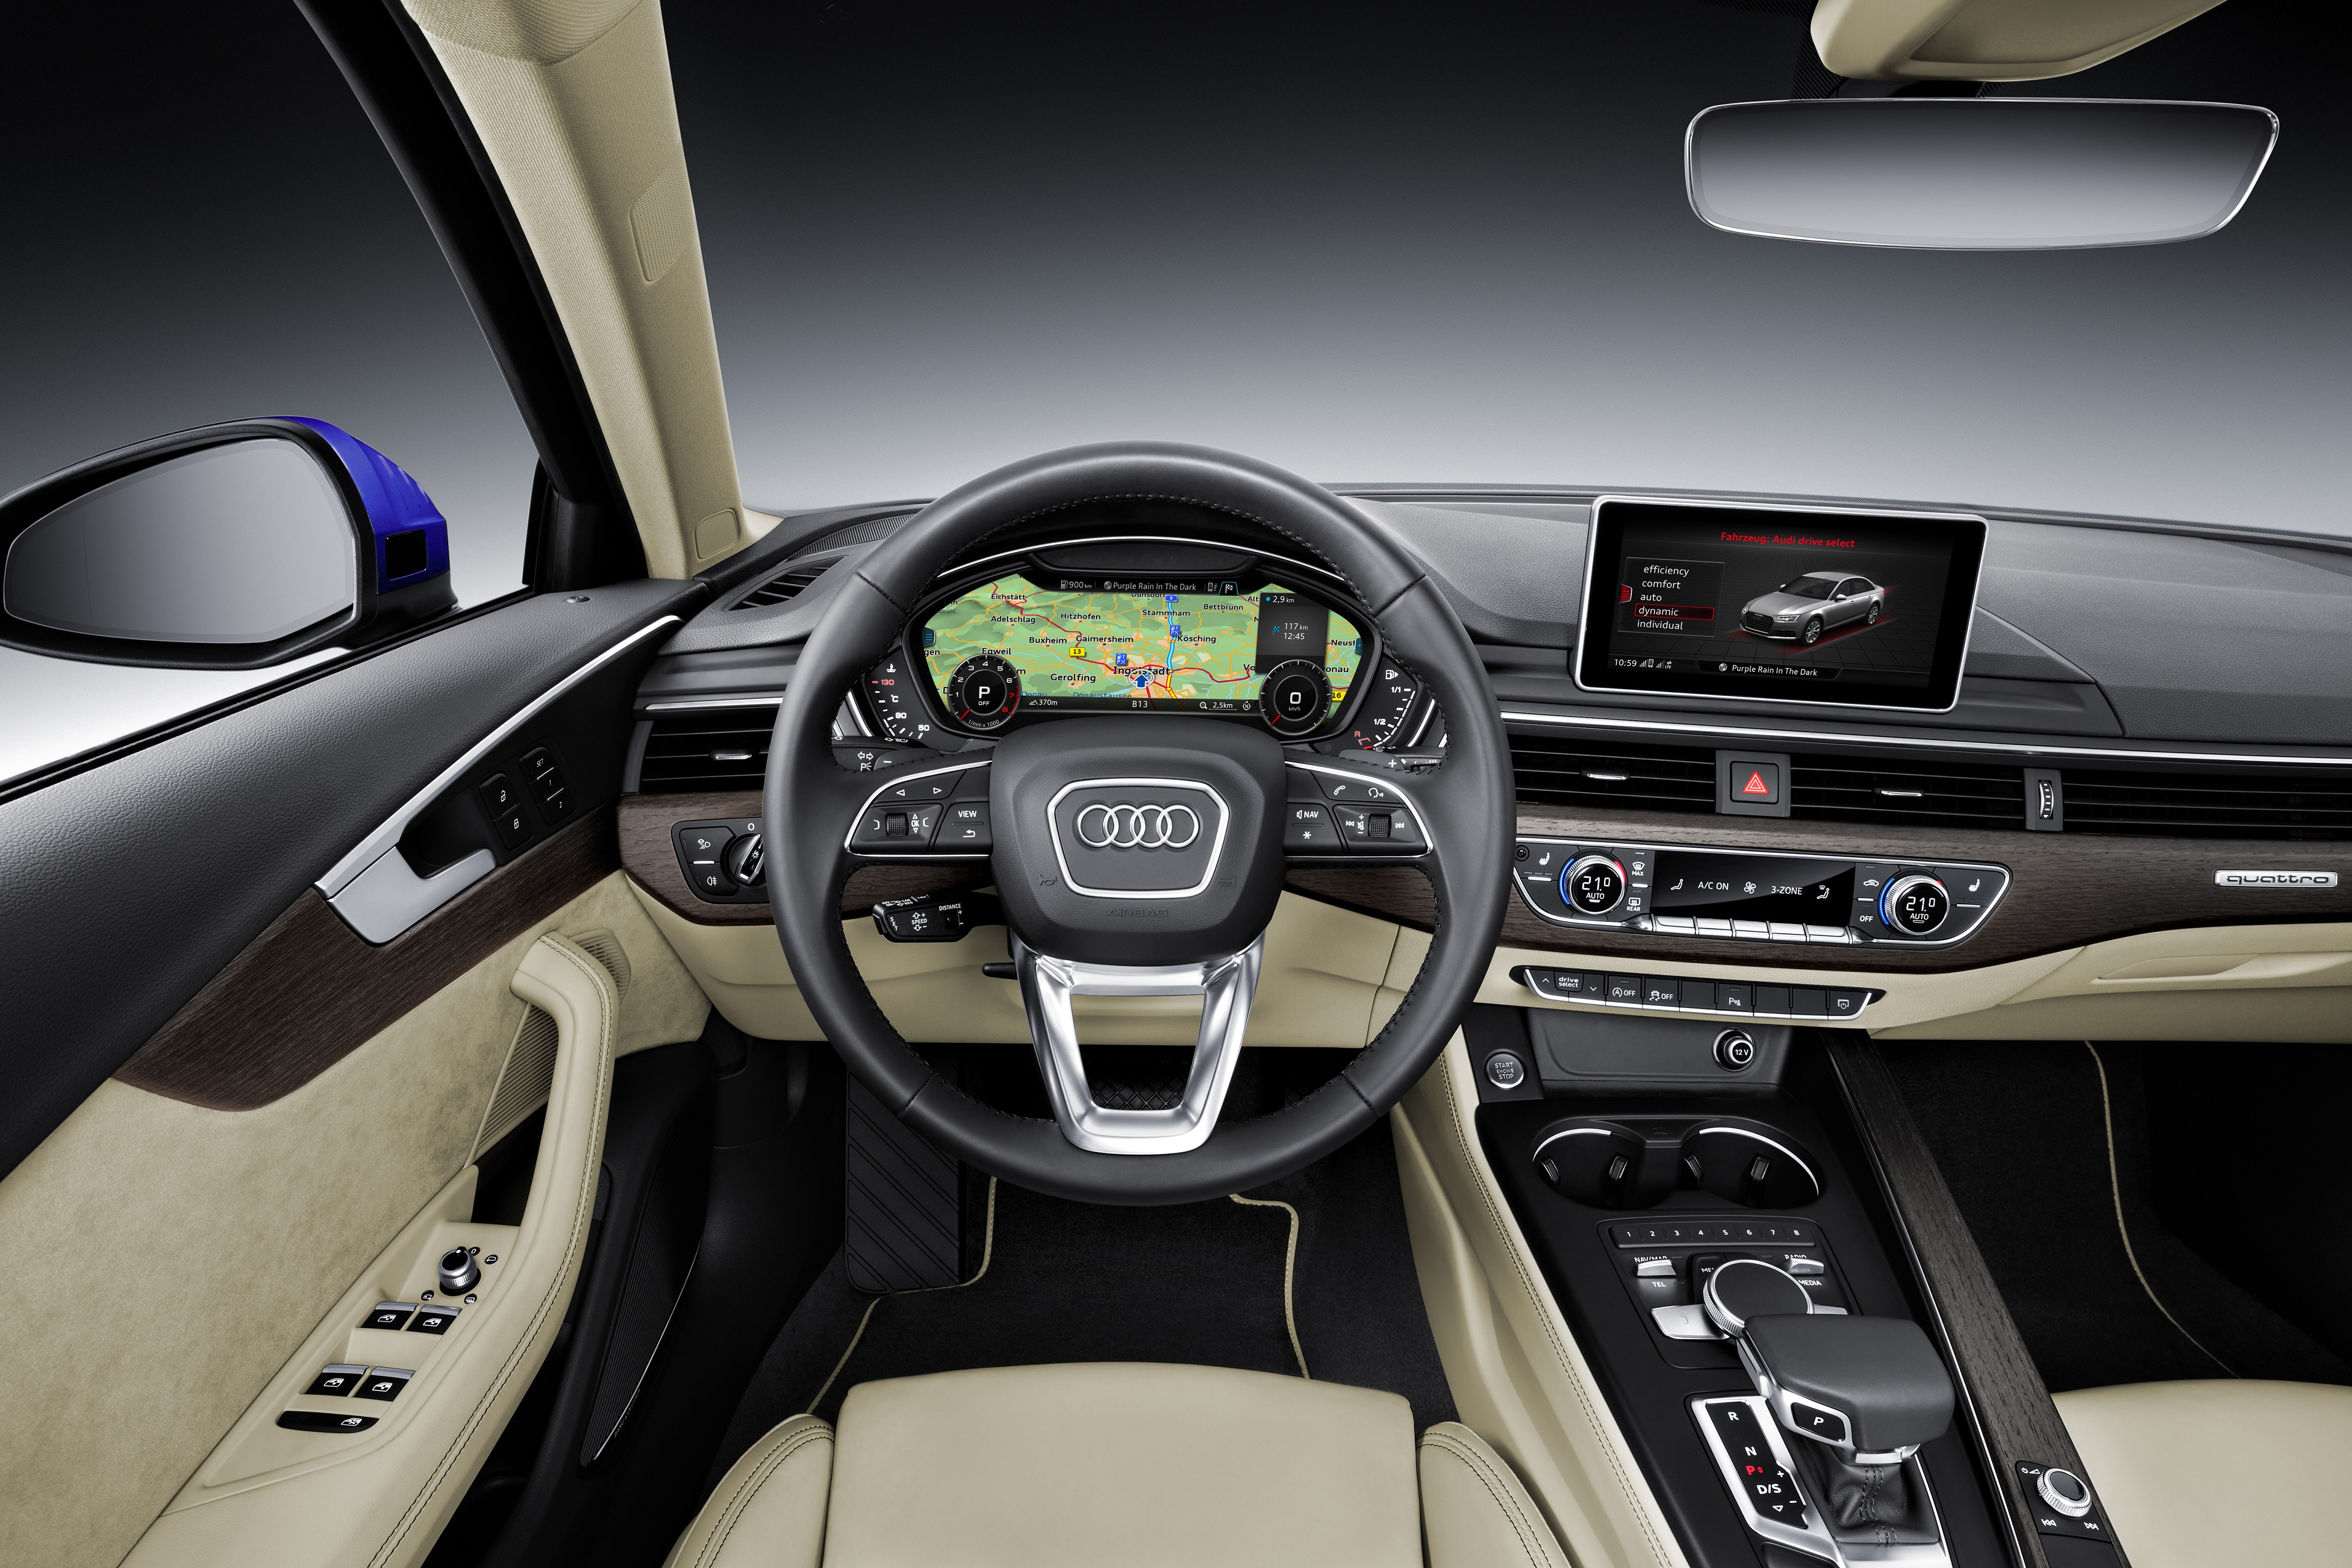 2016 Audi A4 Specs and Release Date interior specs mmi navigation plus mmi touch infotainment system